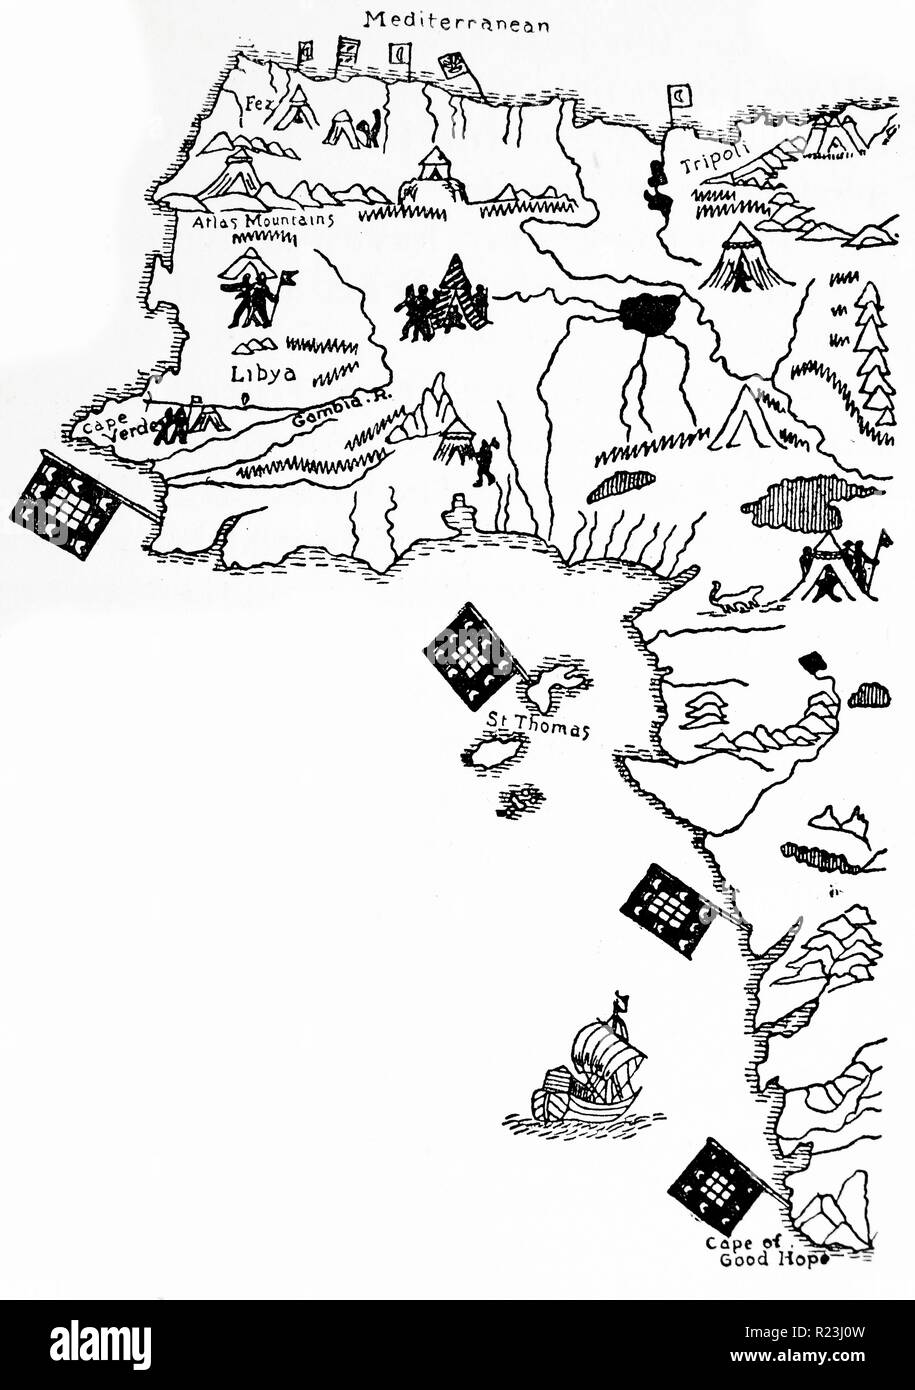 The West Coast of Africa from Martin Behaim's map, 1492 Stock